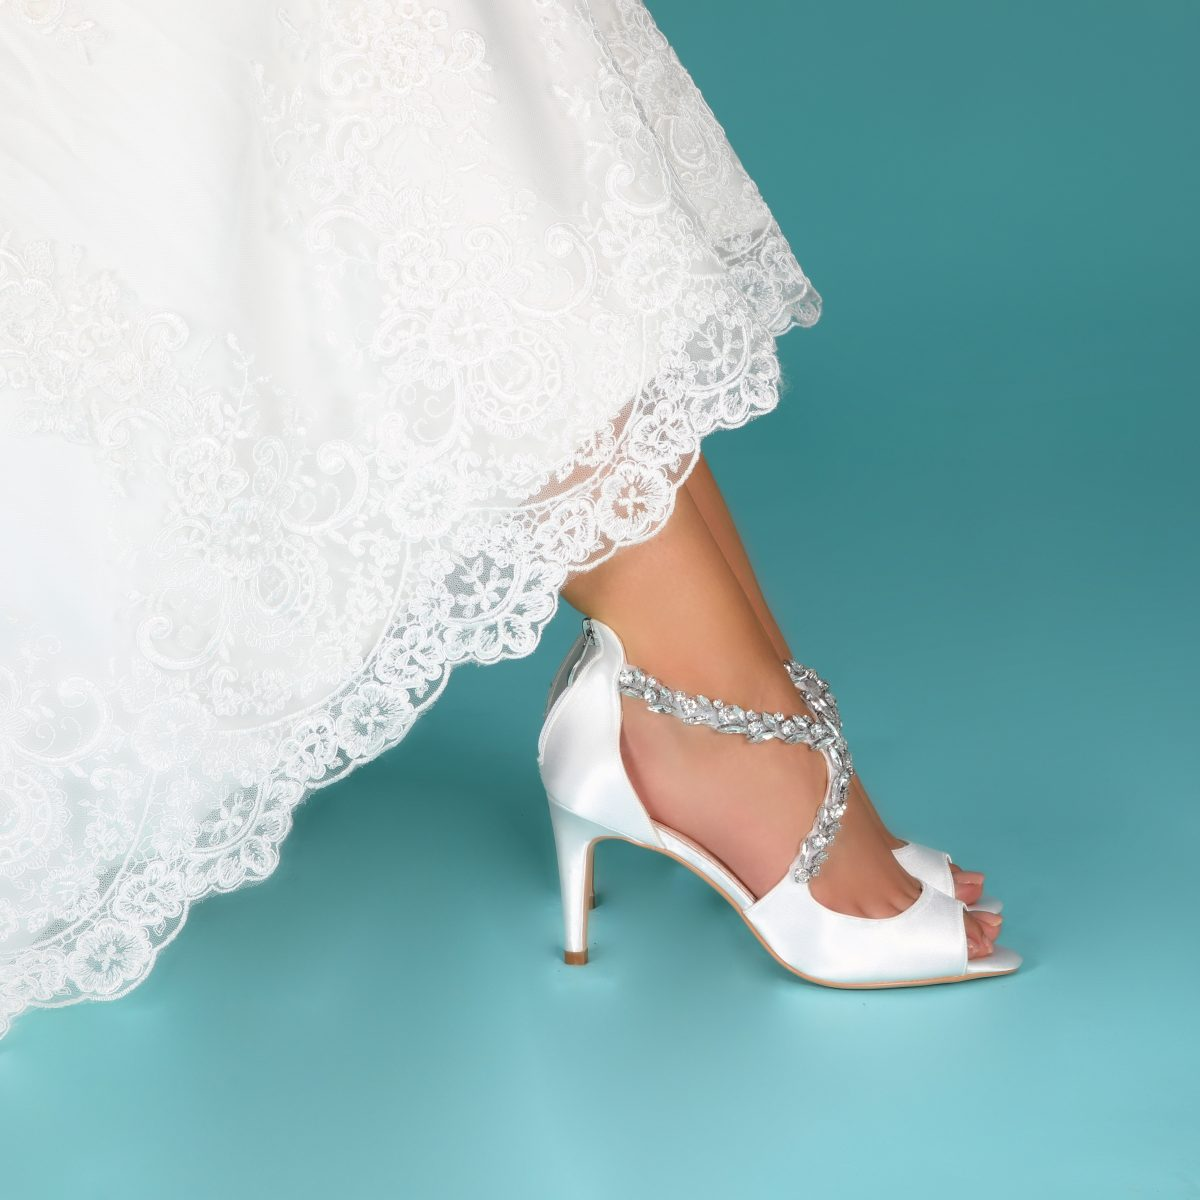 Perfect Bridal Katelyn Shoes - Ivory Satin 2